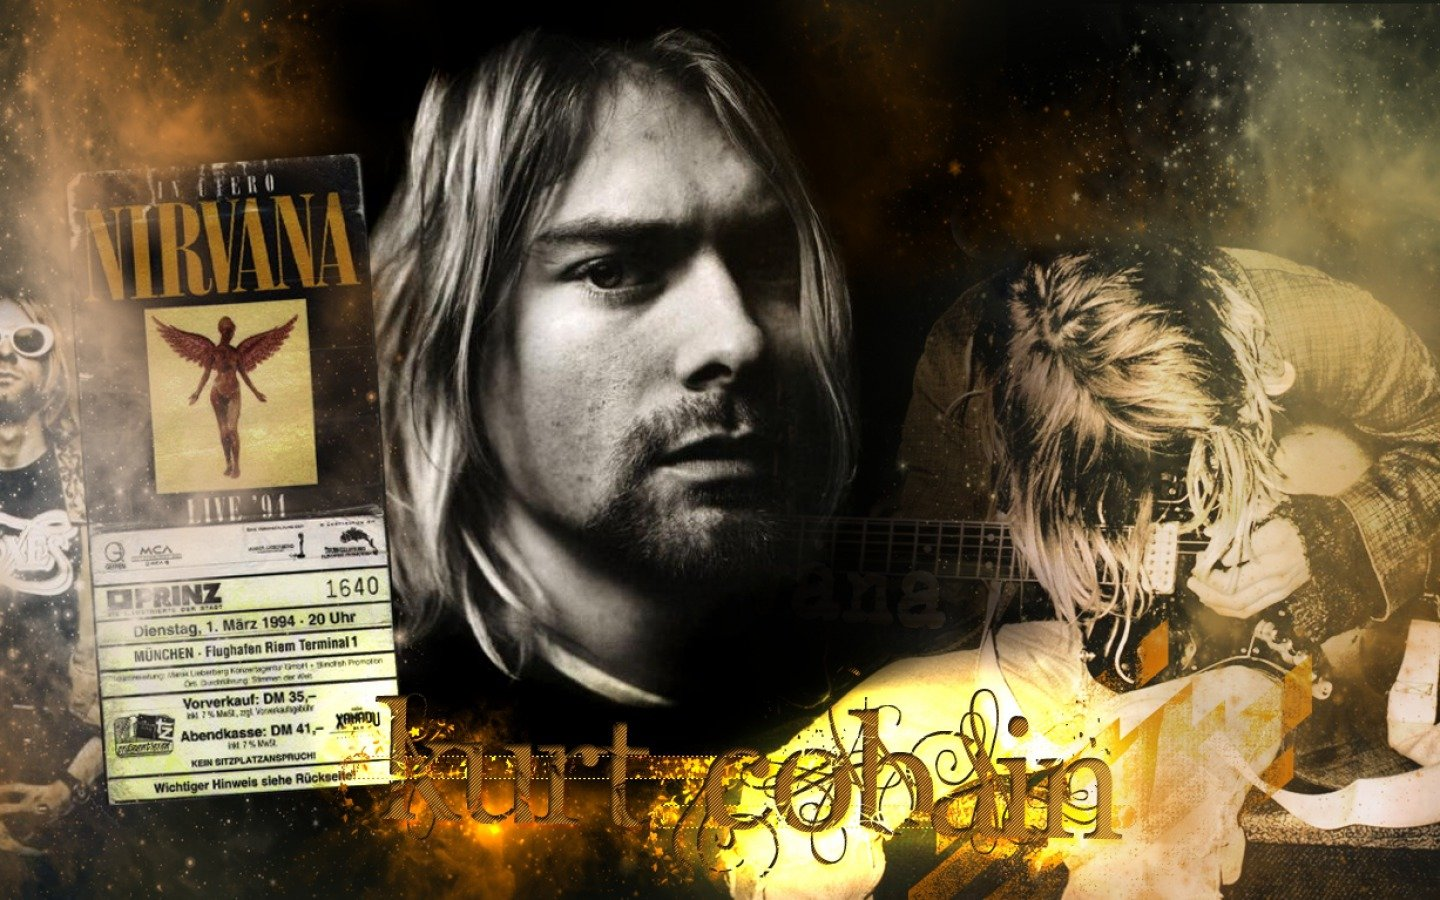 Download Hd 1440x900 Kurt Cobain PC Wallpaper ID340570 For Free